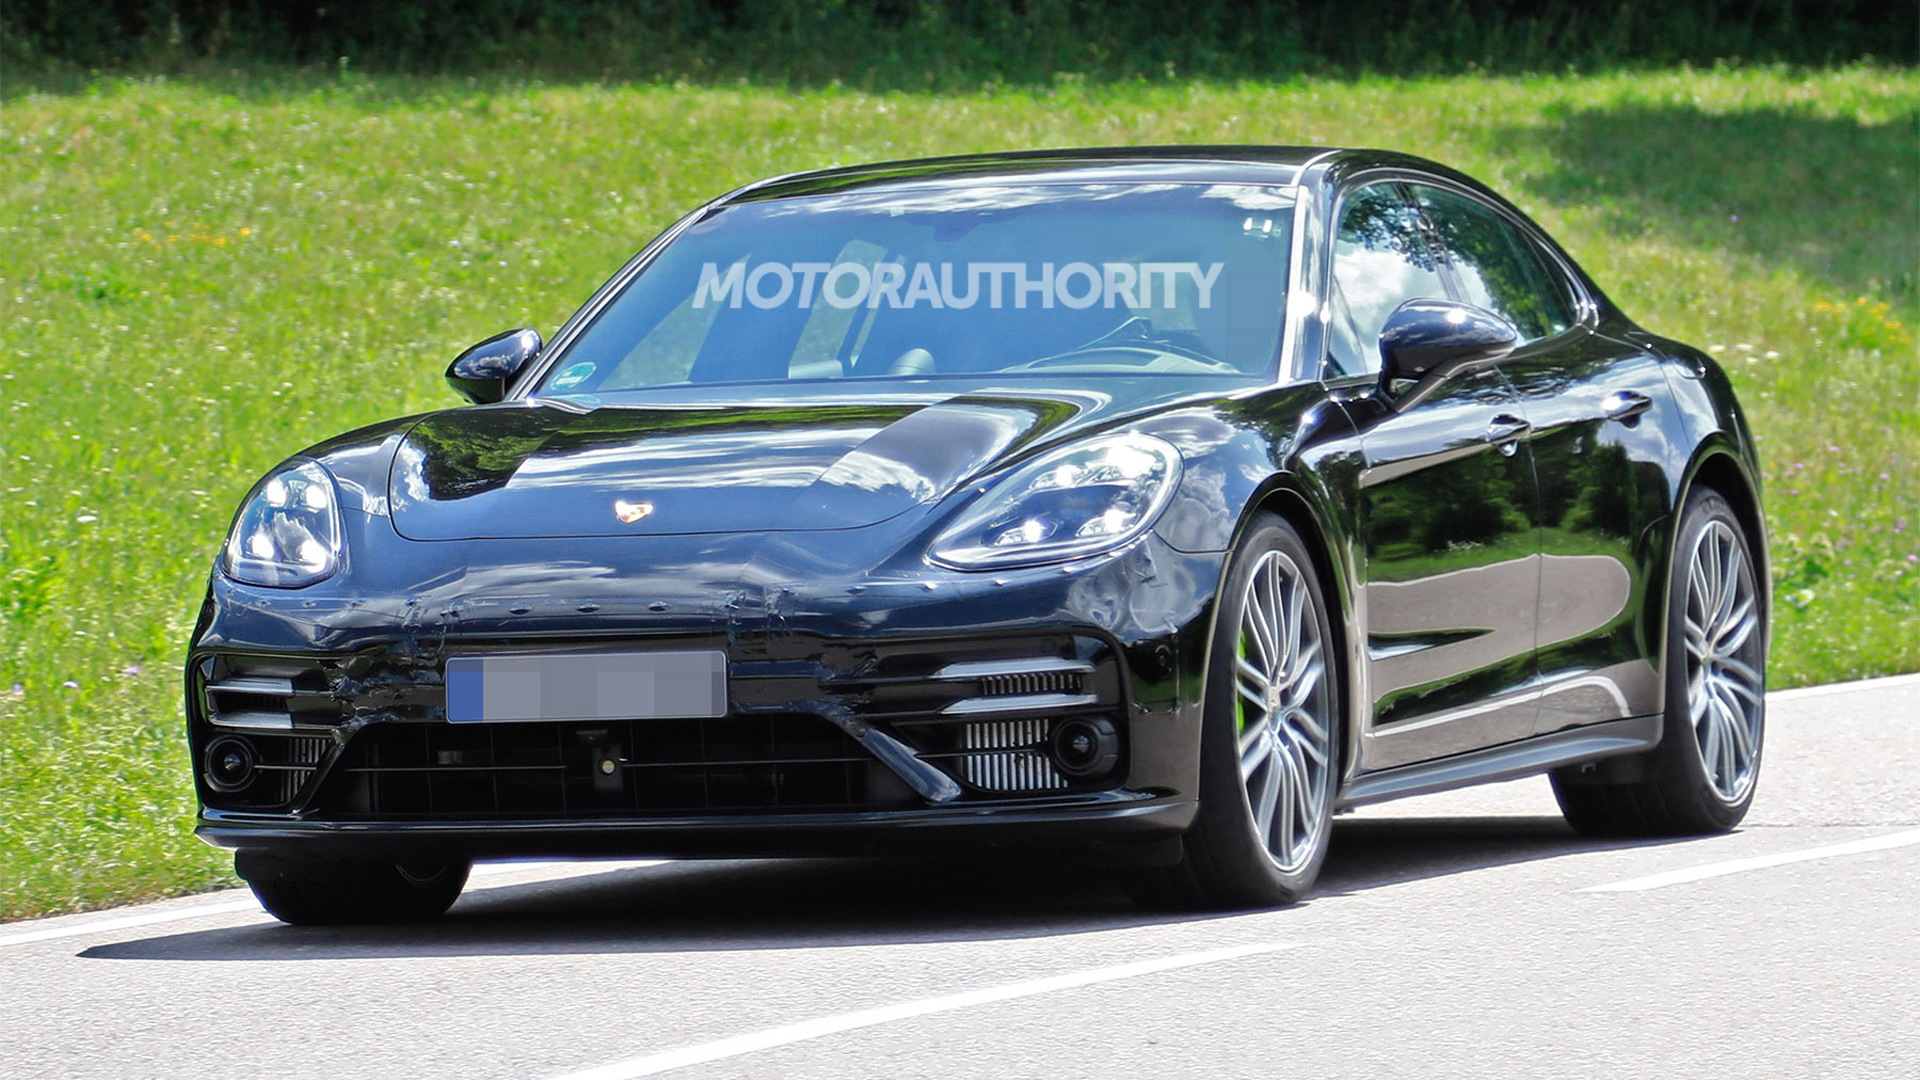 2021 Porsche Panamera Spy Shots And Video